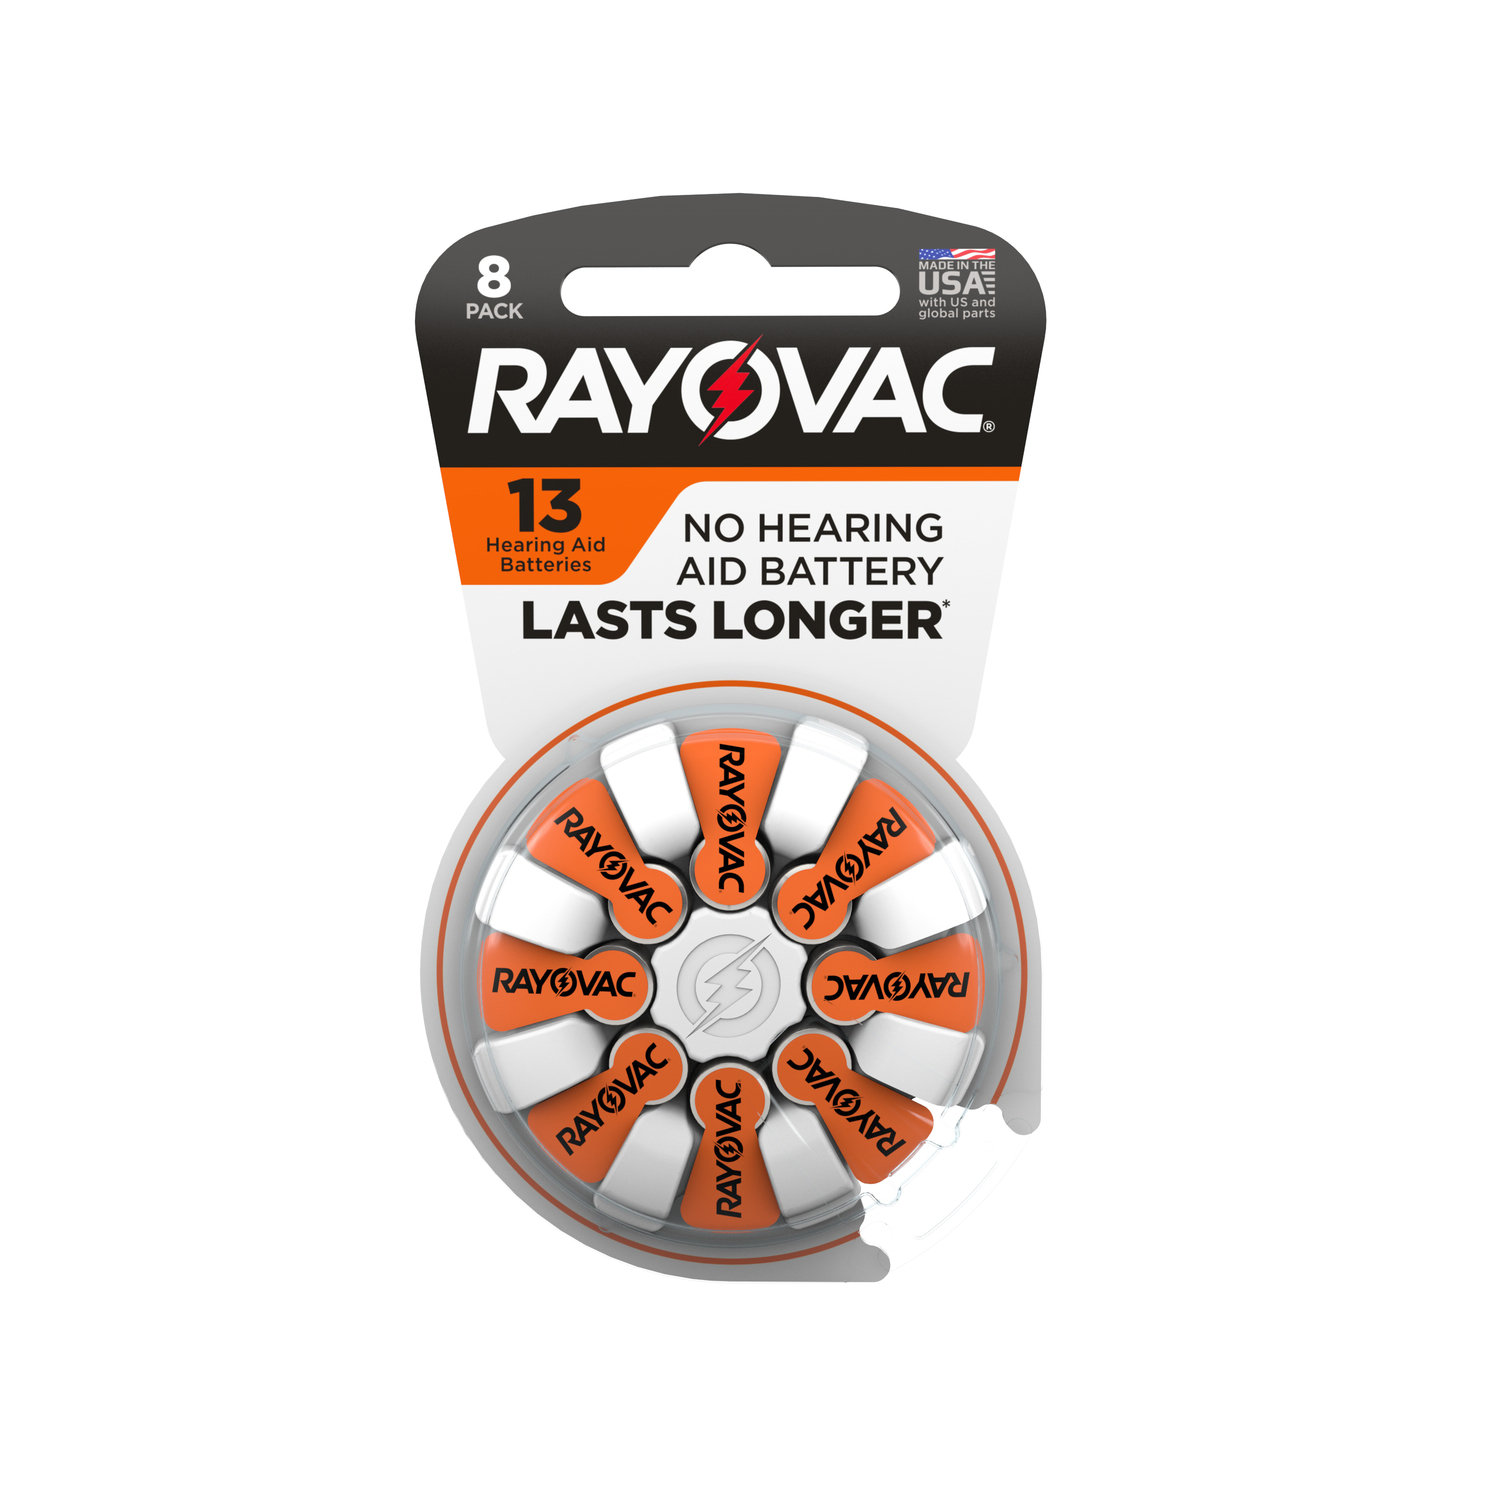 Rayovac  Zinc-Air  Hearing Aid Battery  8 pk 13